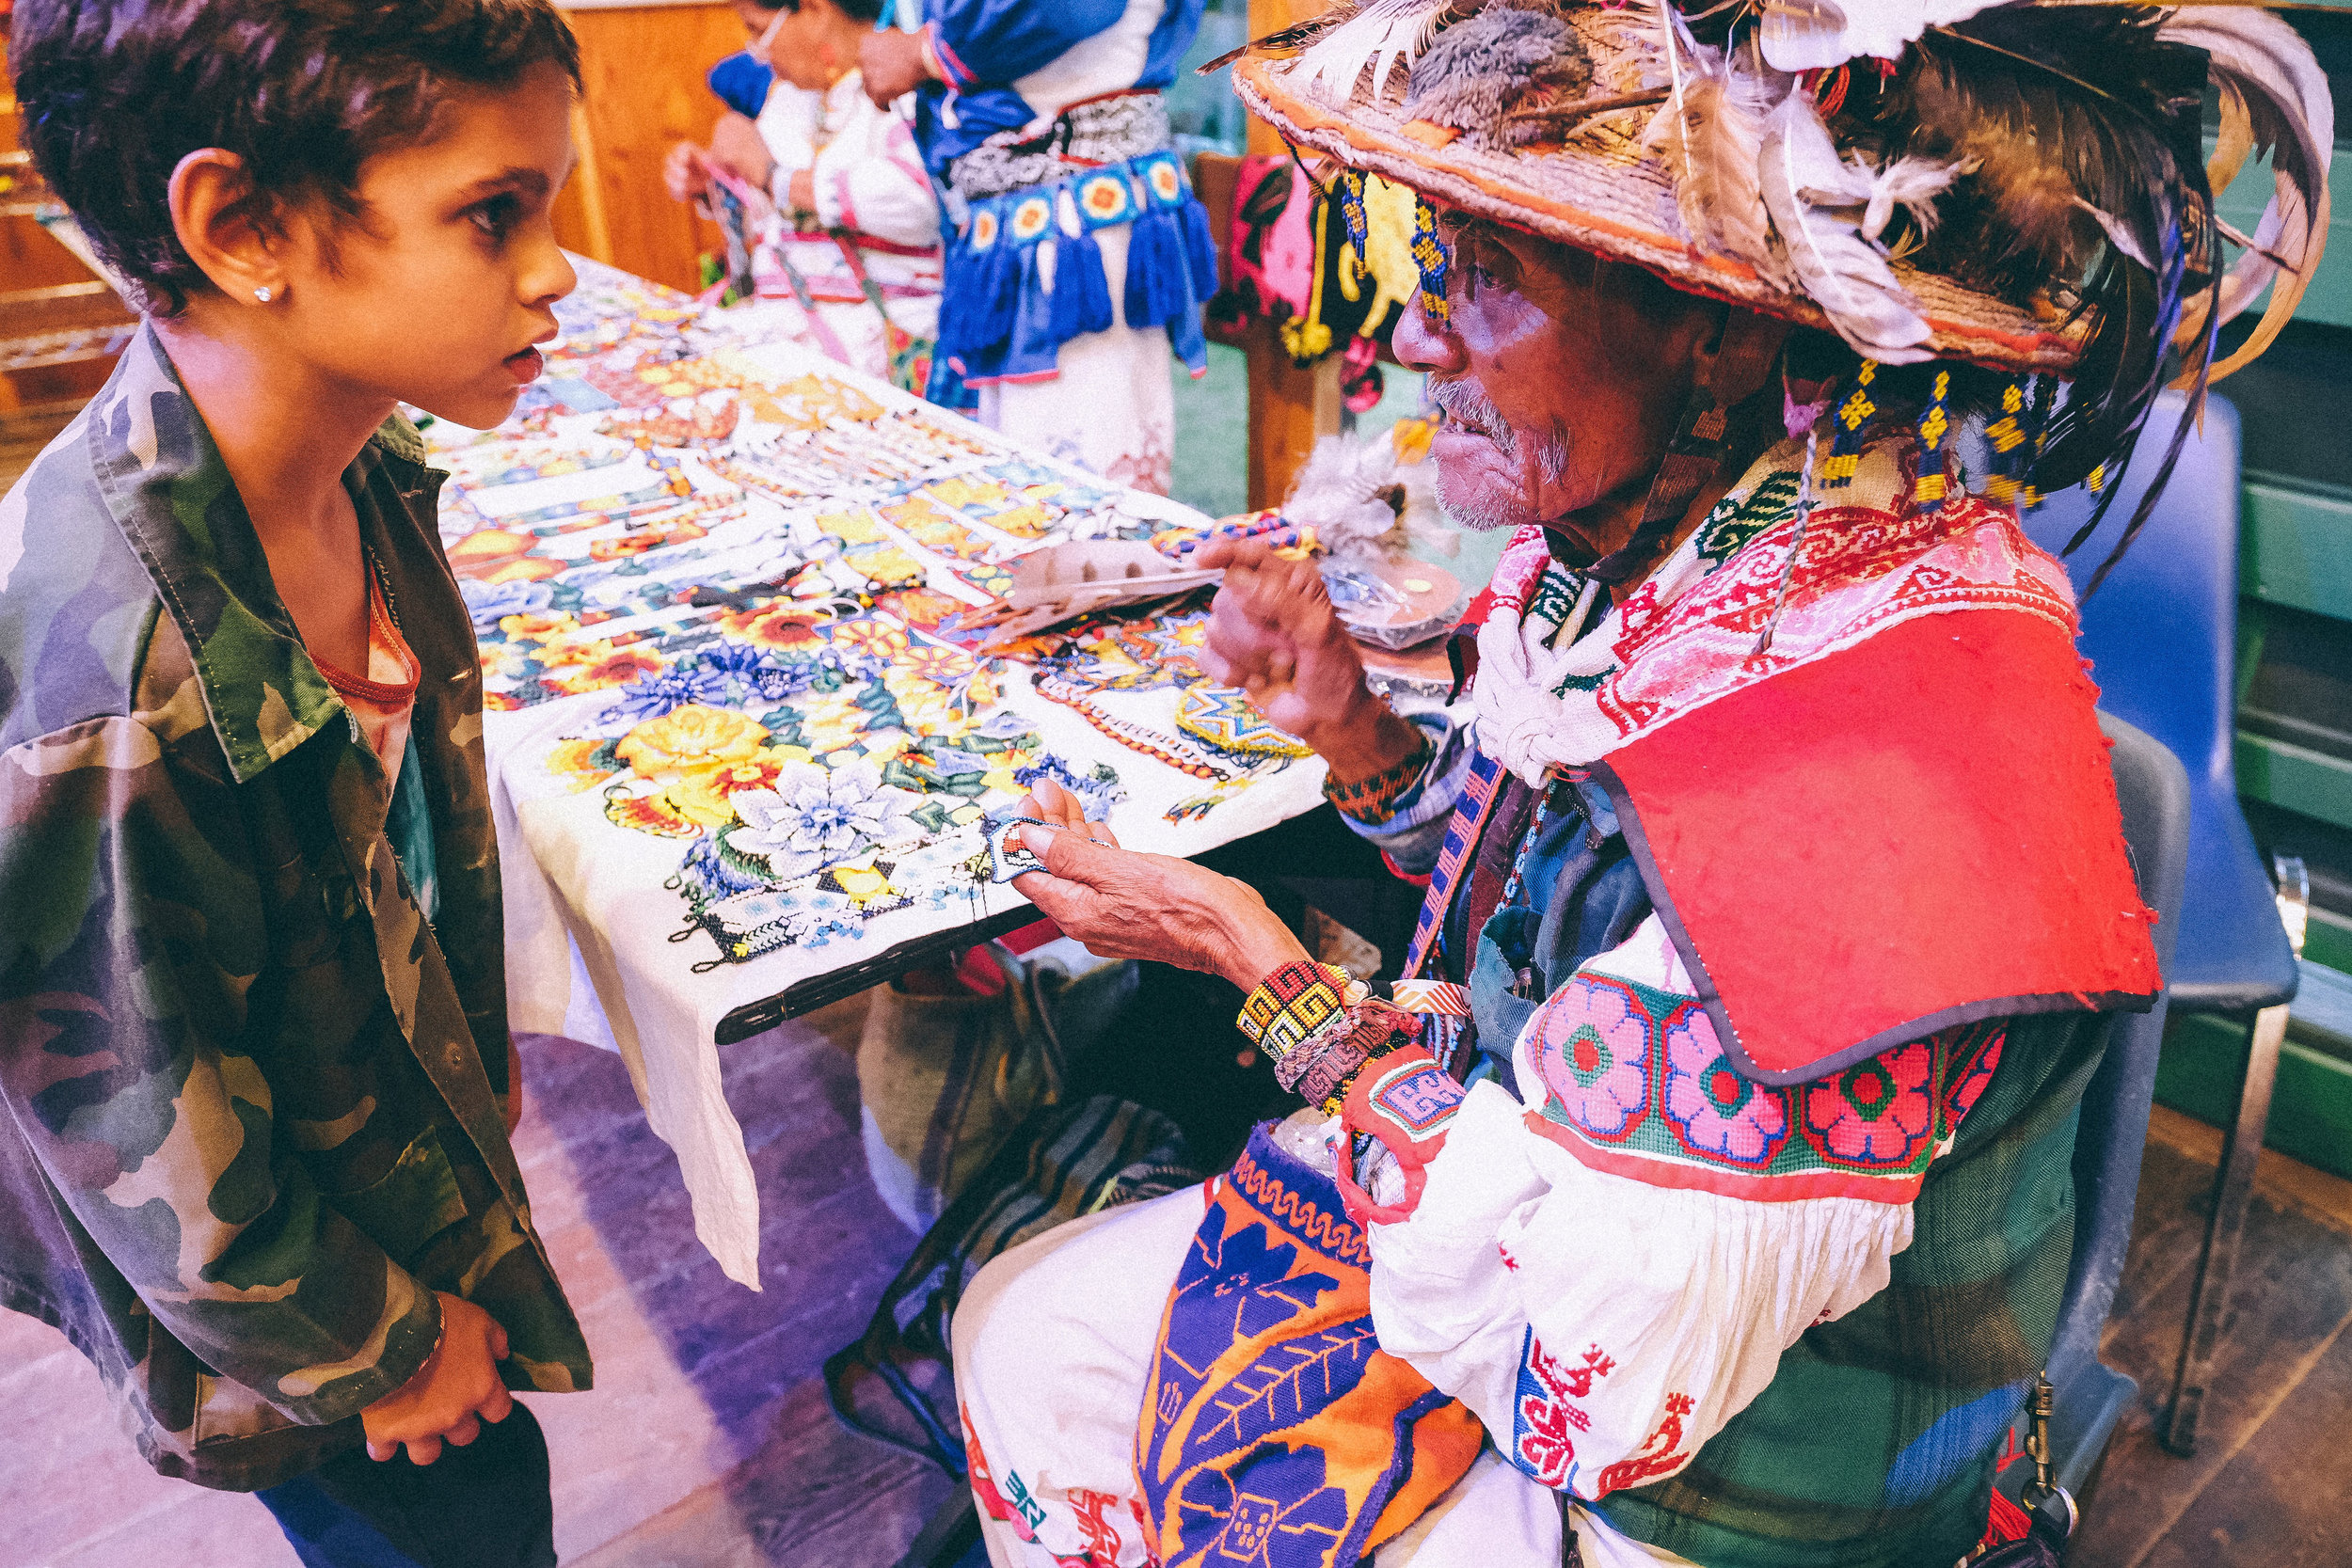 Find the most exquisite treasures and handcrafts at our indigenous market - INDIGEnOUS ART MARKET